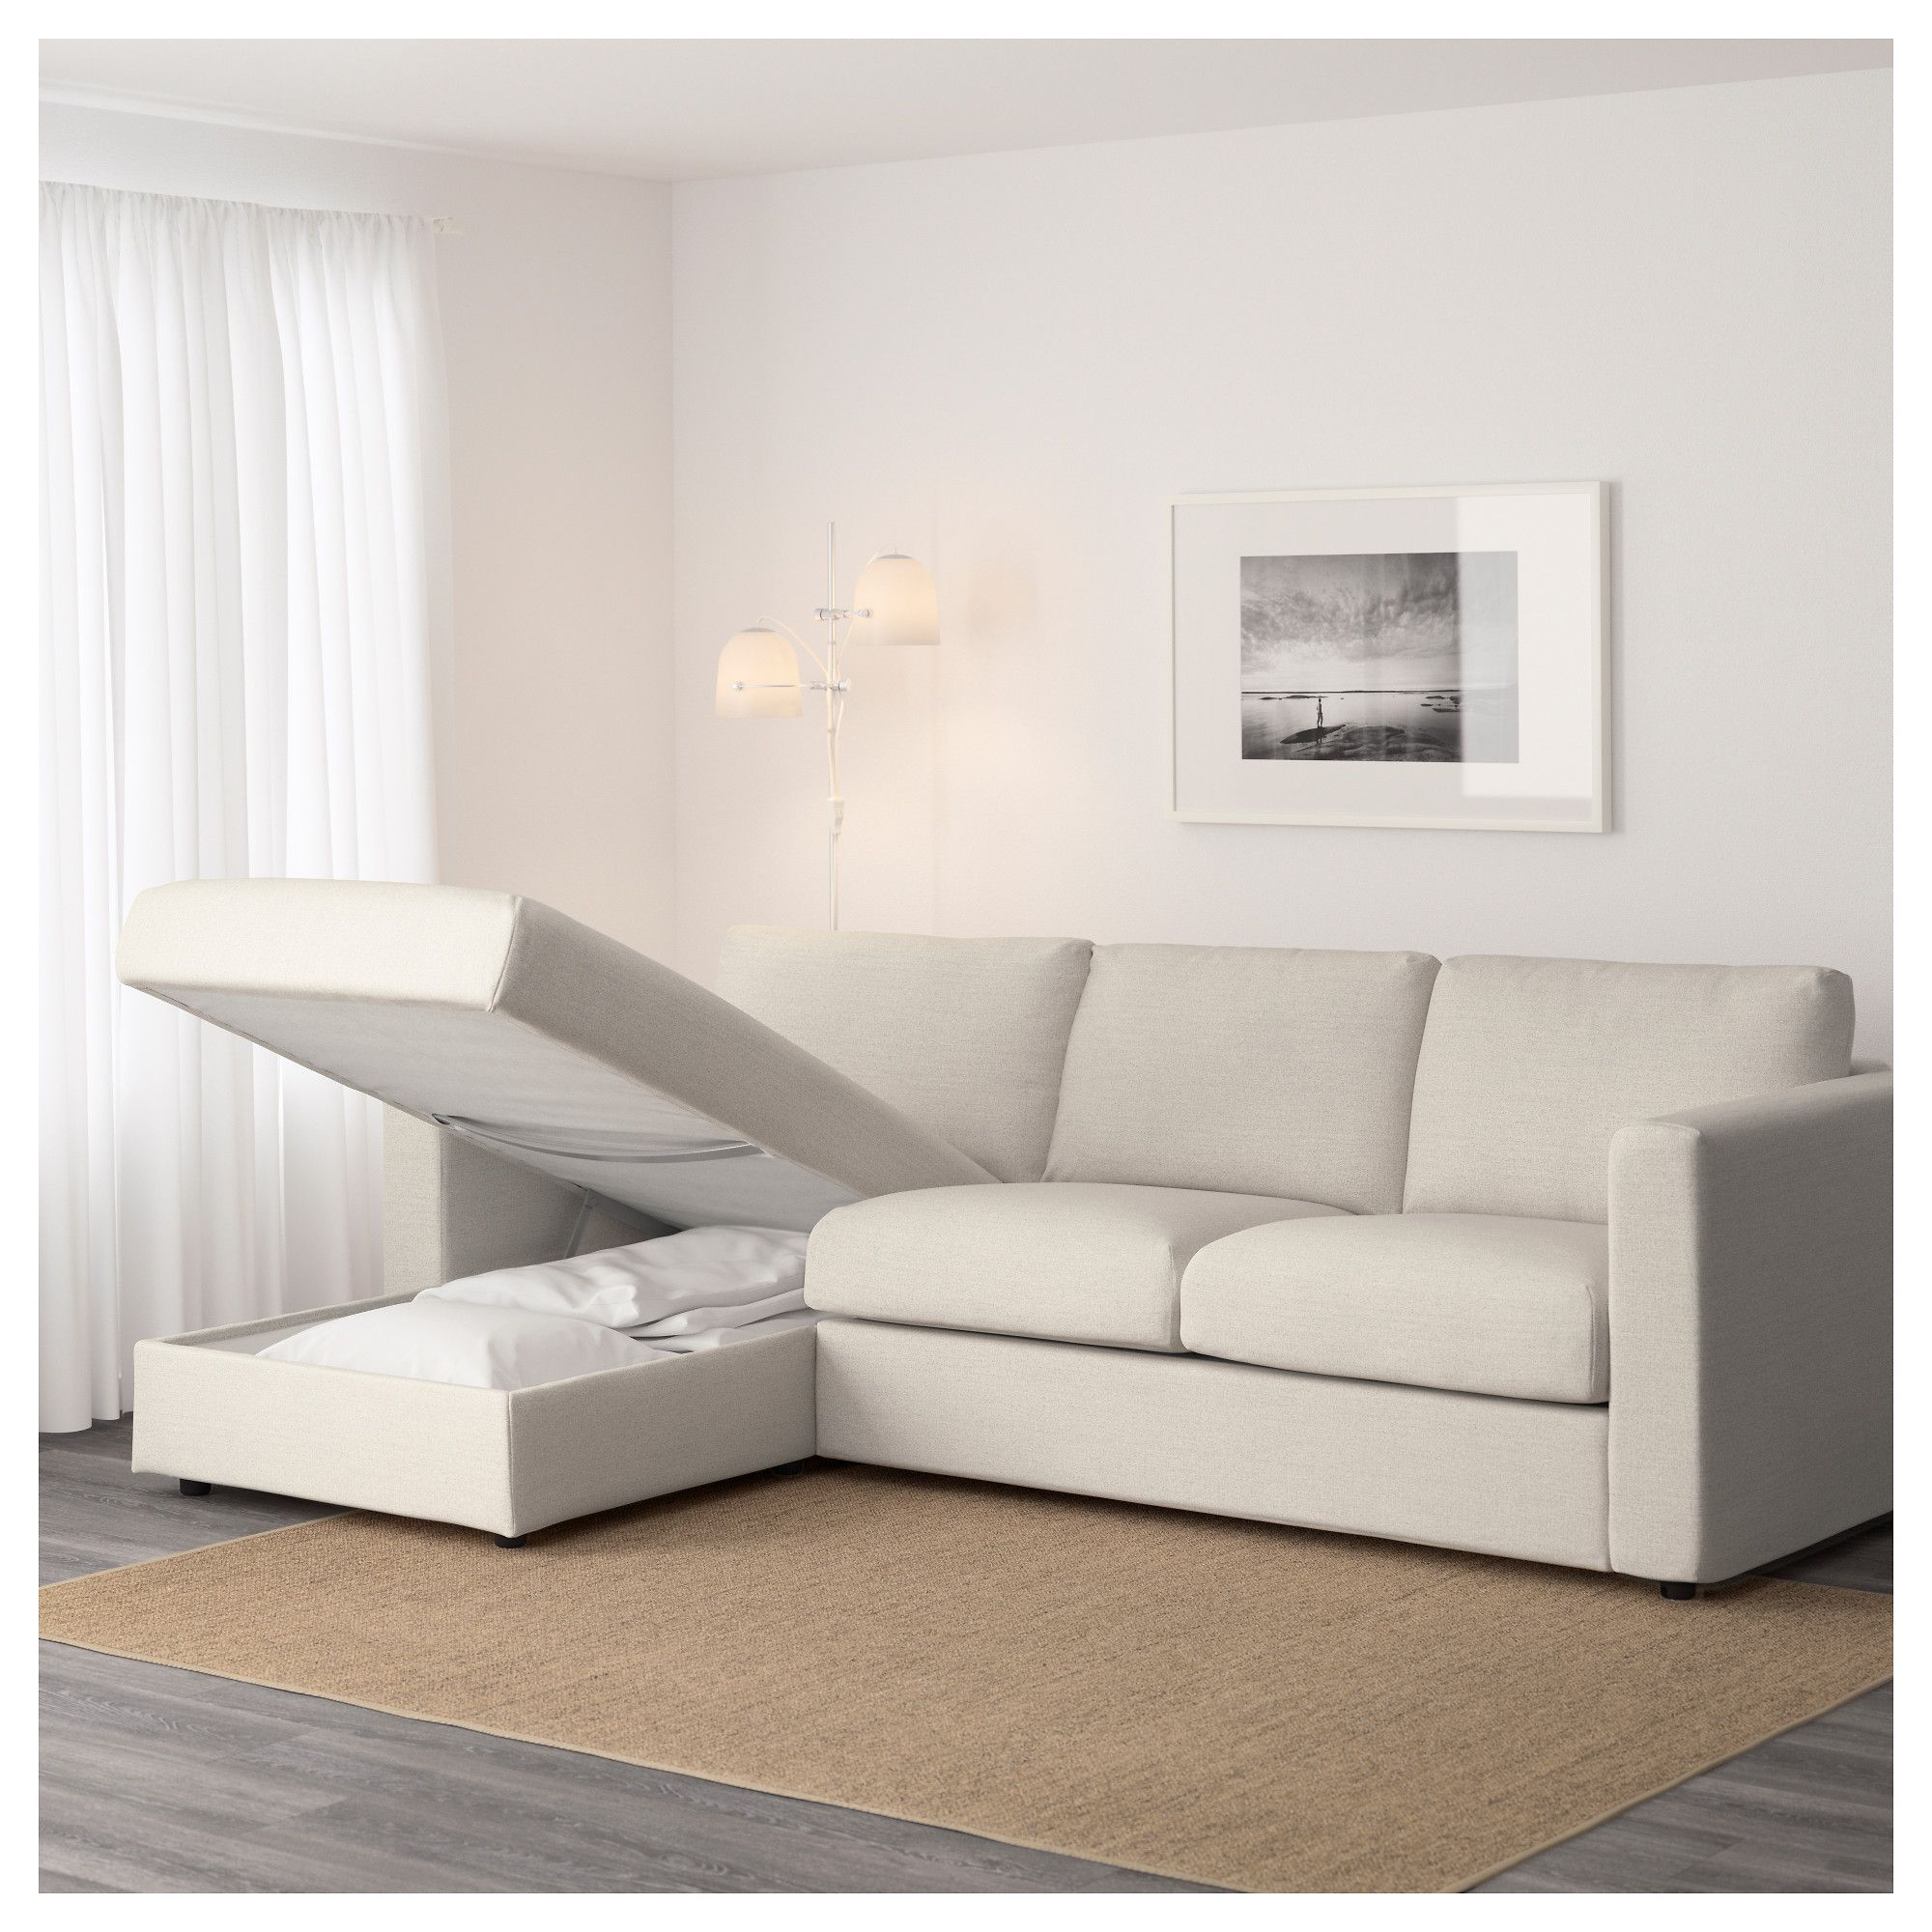 Furniture And Home Furnishings In 2019 Products Cozy Sofa Cosy